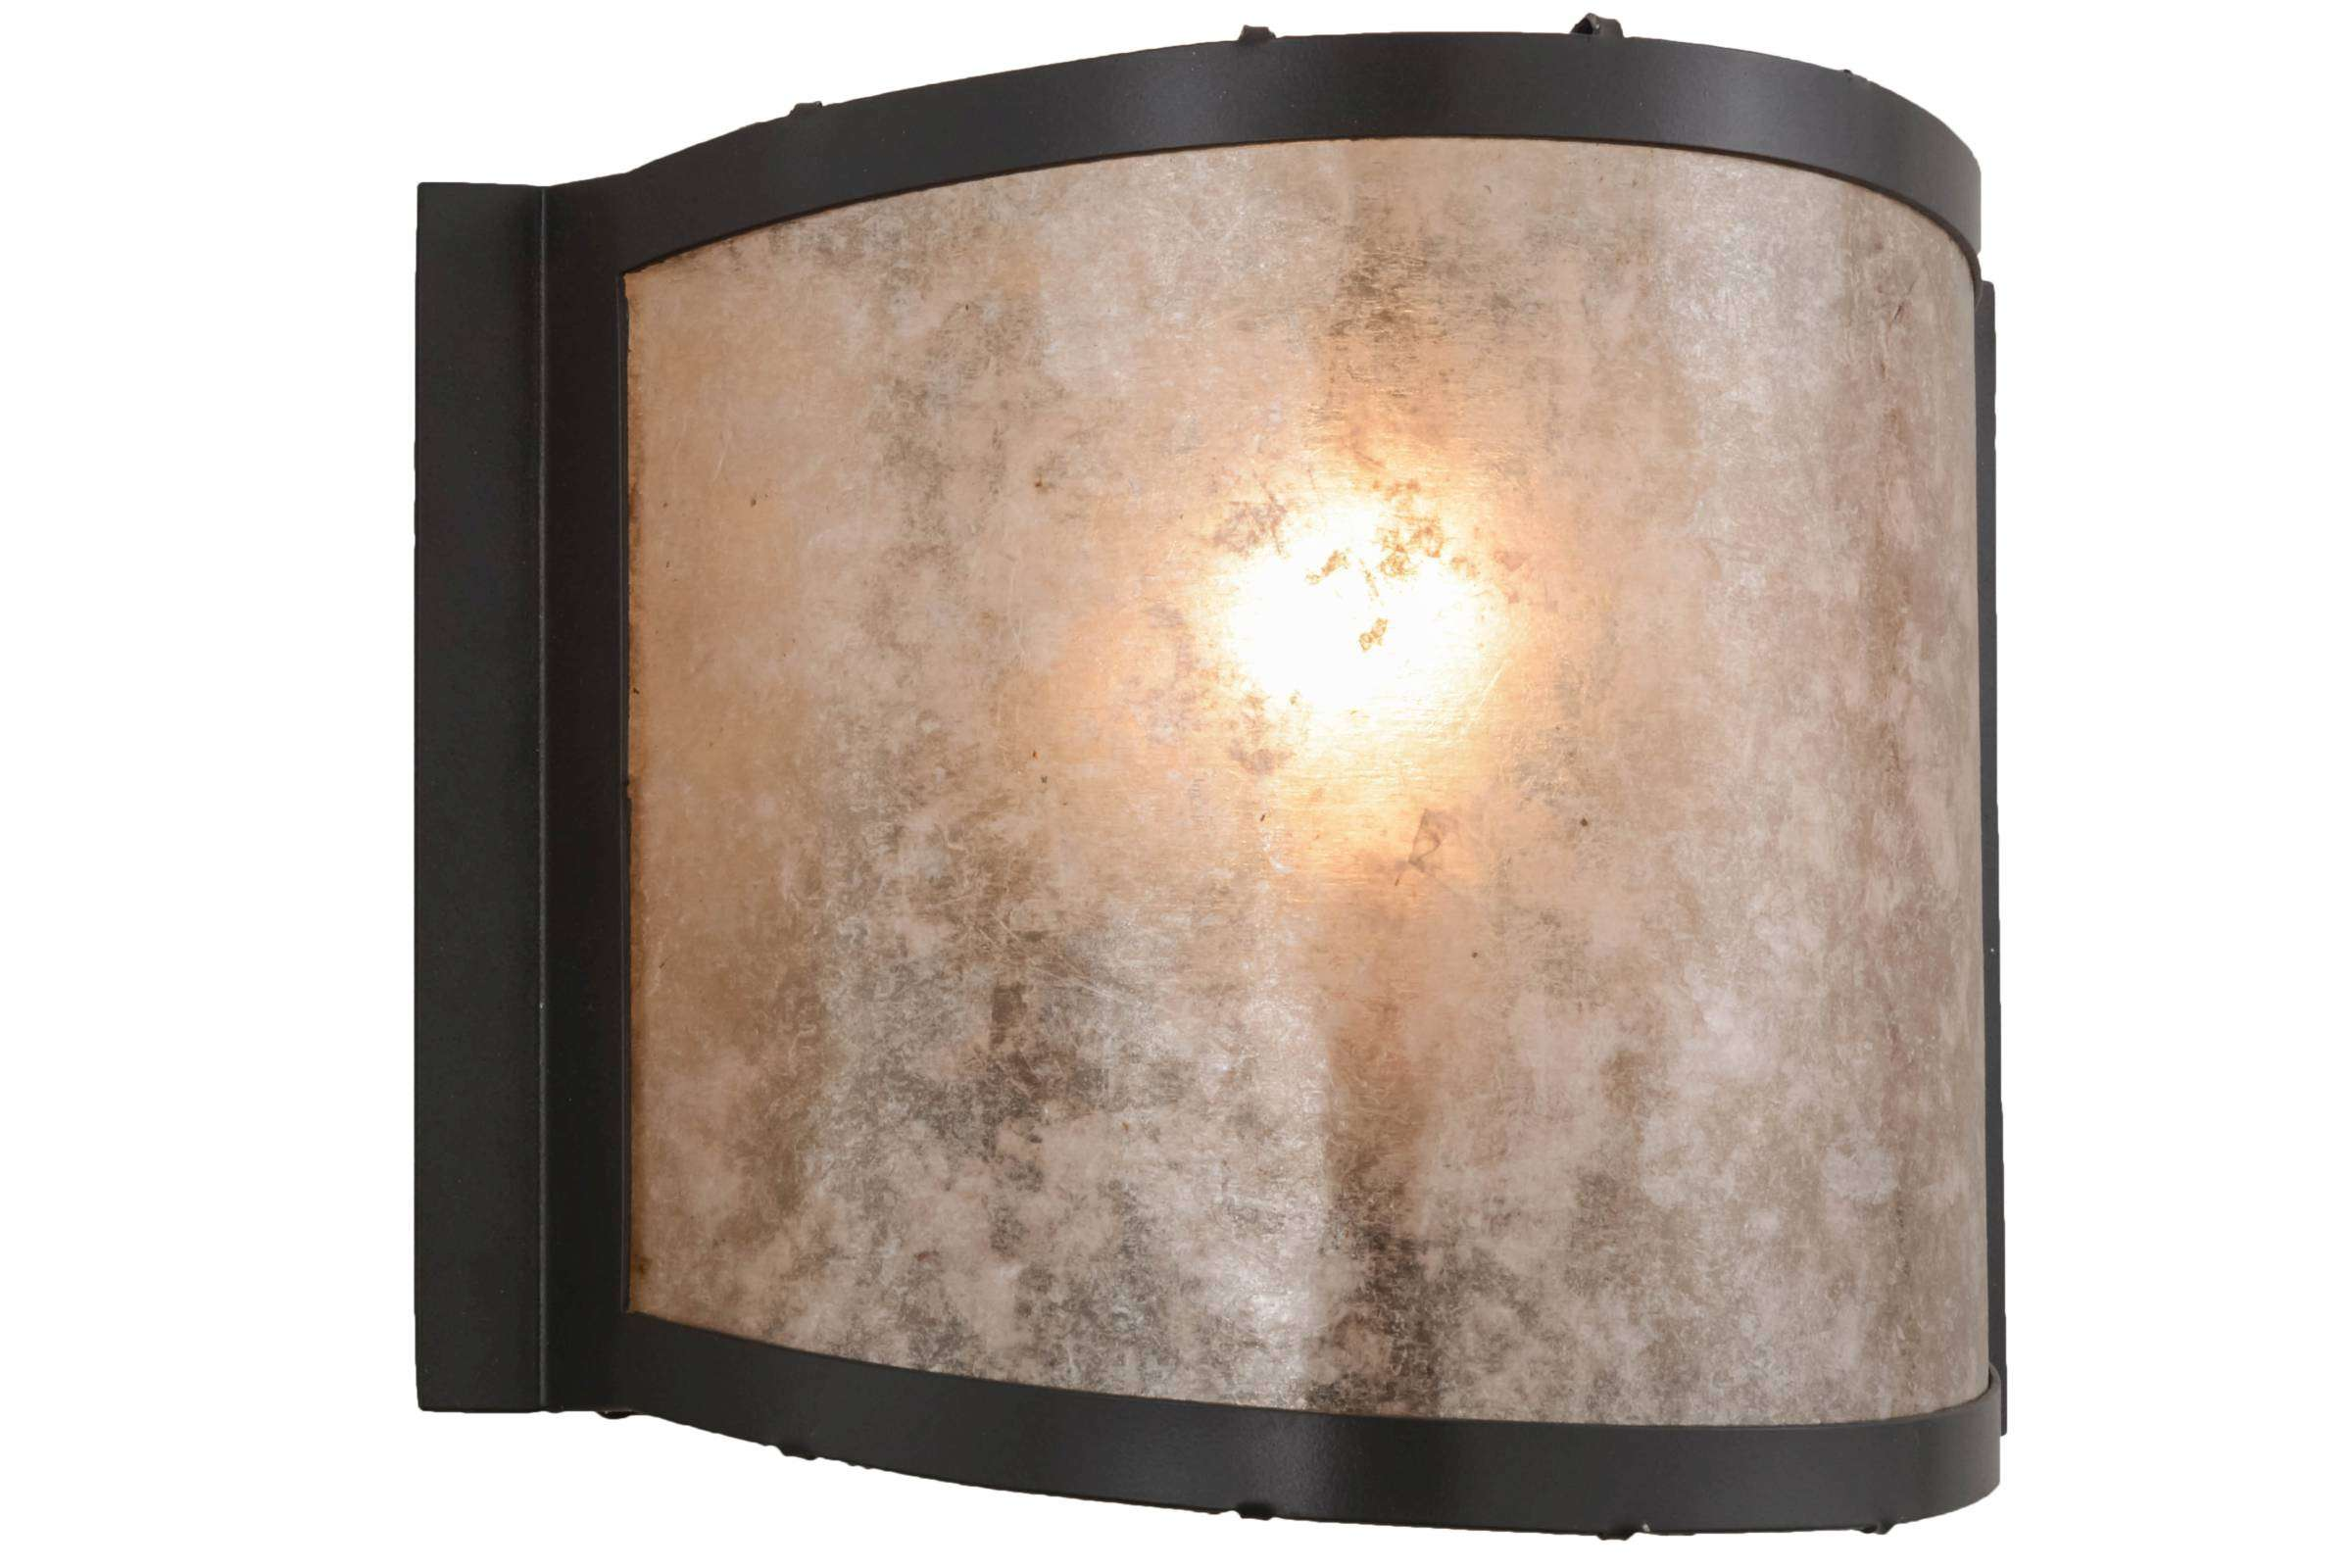 Meyda Tiffany 26920 Simple Mission Wall Sconce in Timeless Bronze finish with Silver Mica